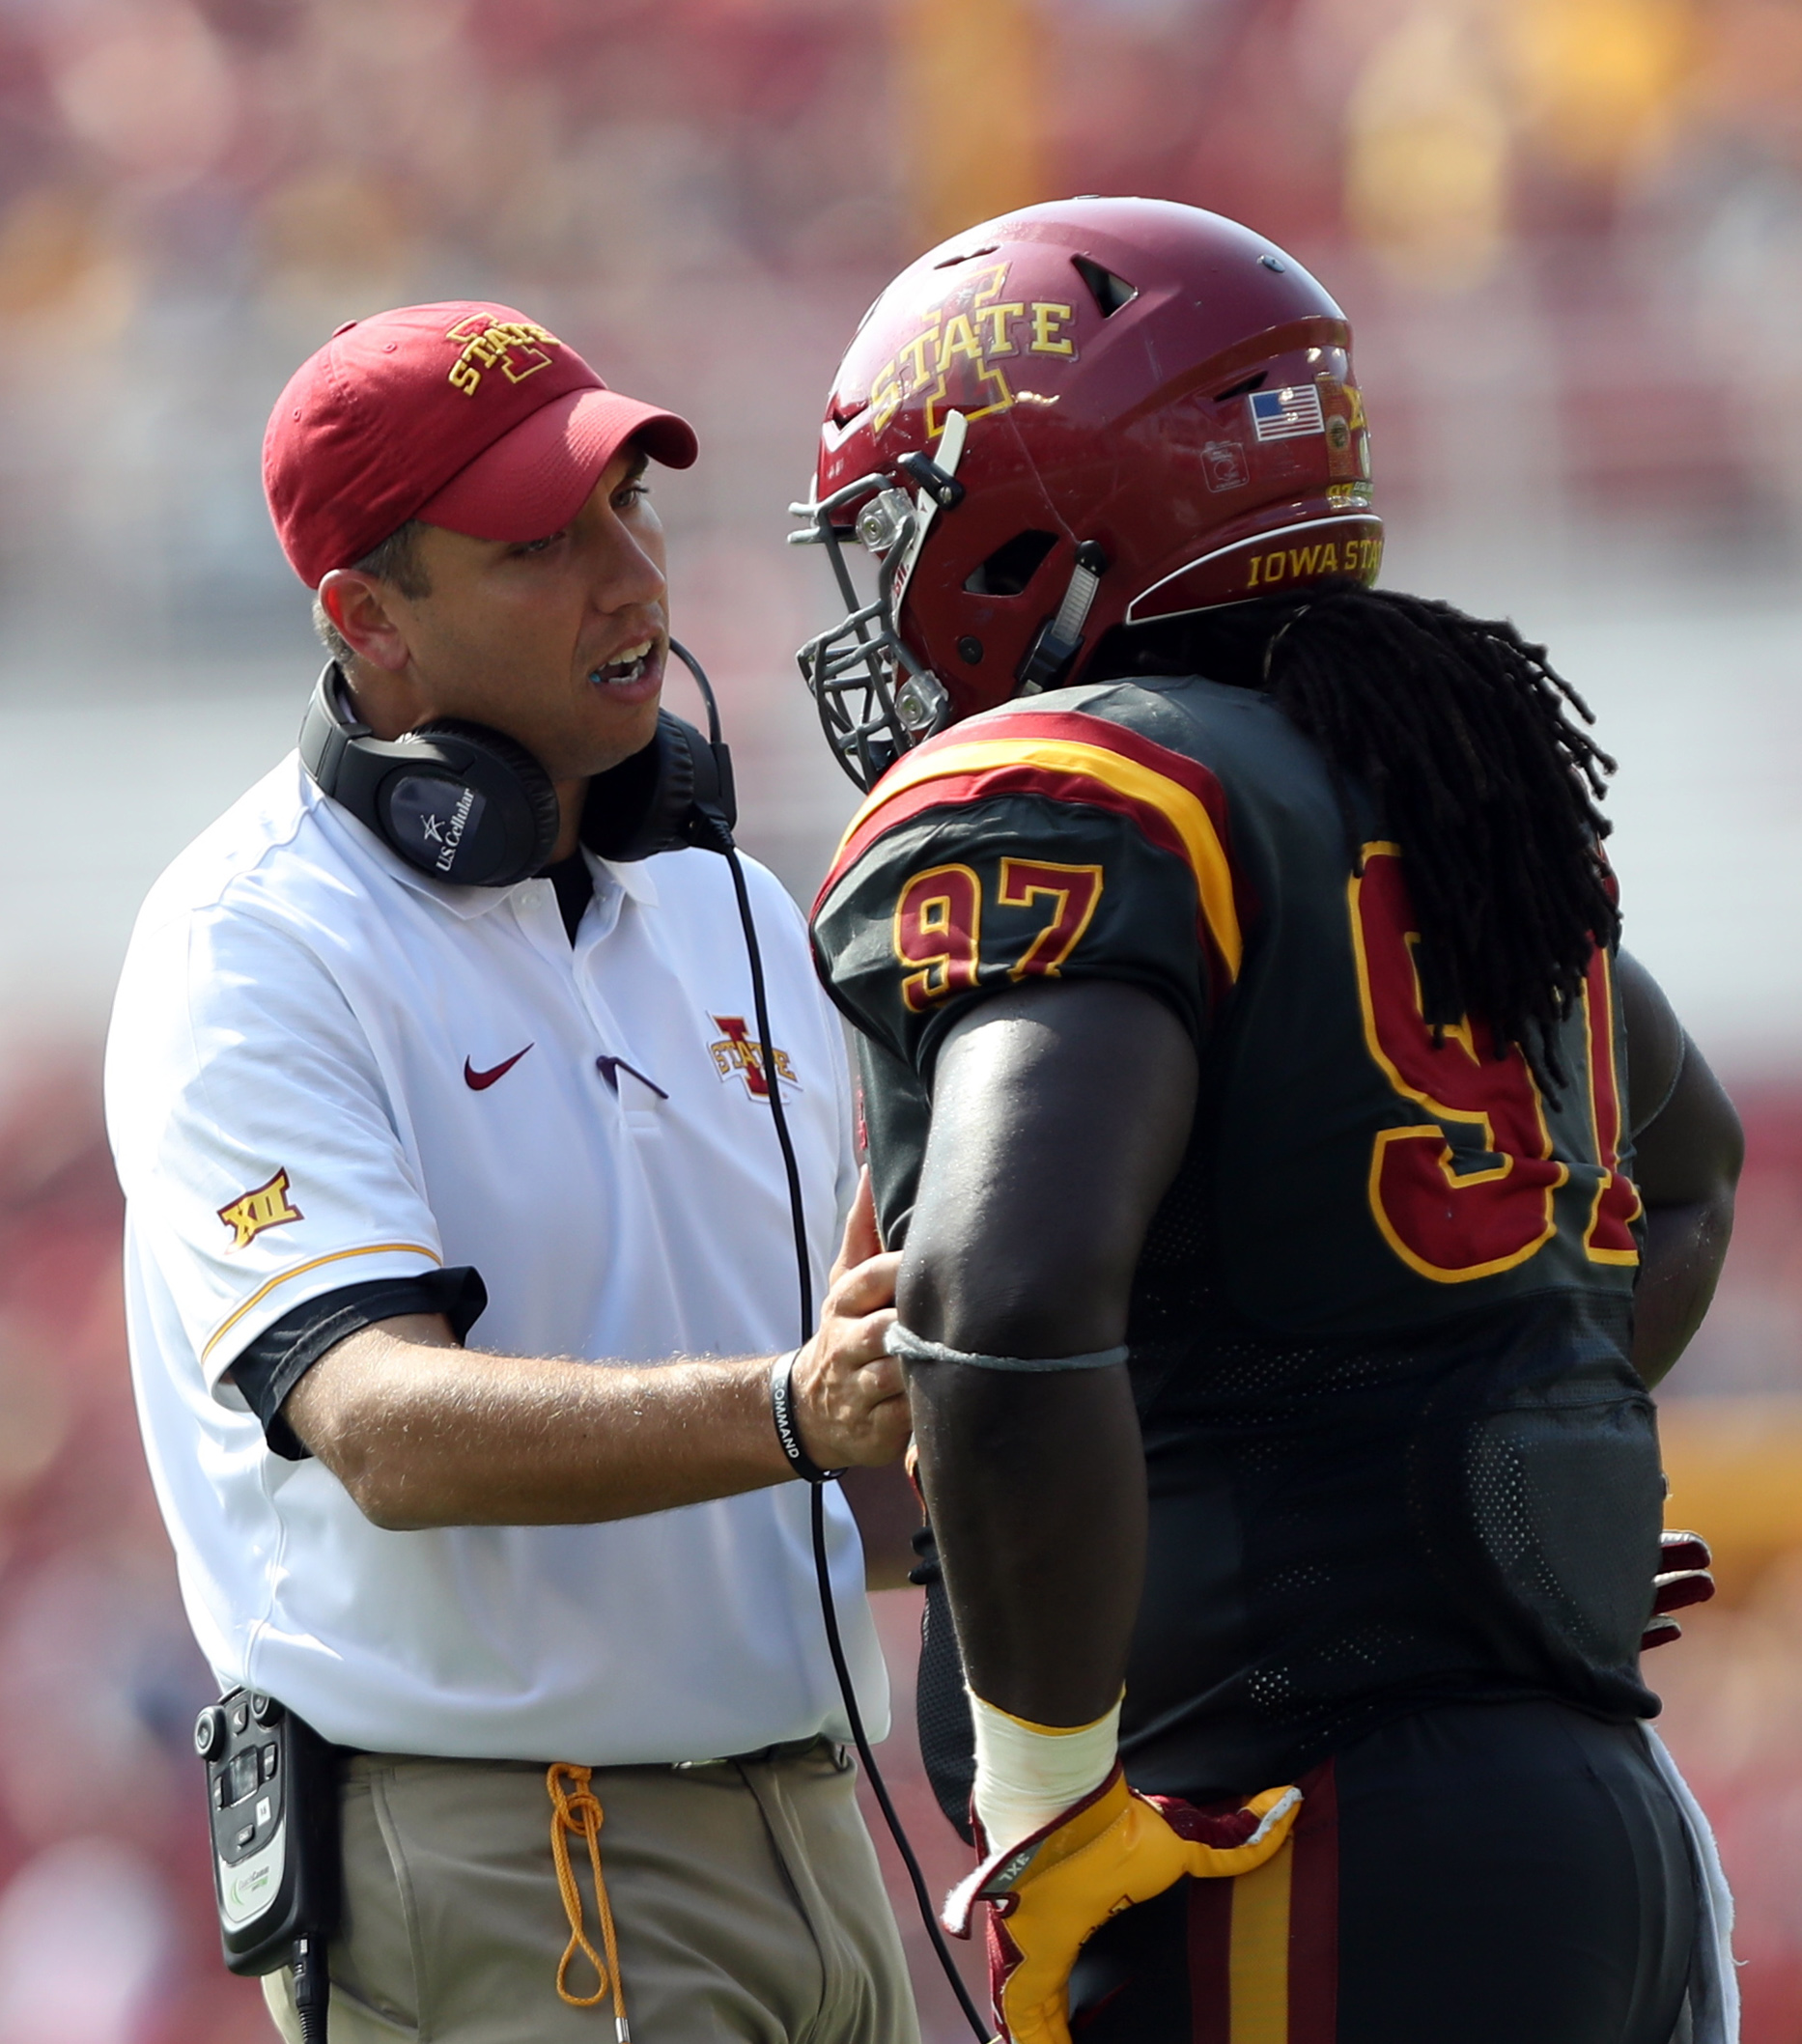 Sep 24, 2016; Ames, IA, USA; Iowa State Cyclones head coach Matt Campbell talks to Iowa State Cyclones defensive lineman Demond Tucker (97) during their game against the San Jose State Spartans at Jack Trice Stadium. Mandatory Credit: Reese Strickland-USA TODAY Sports